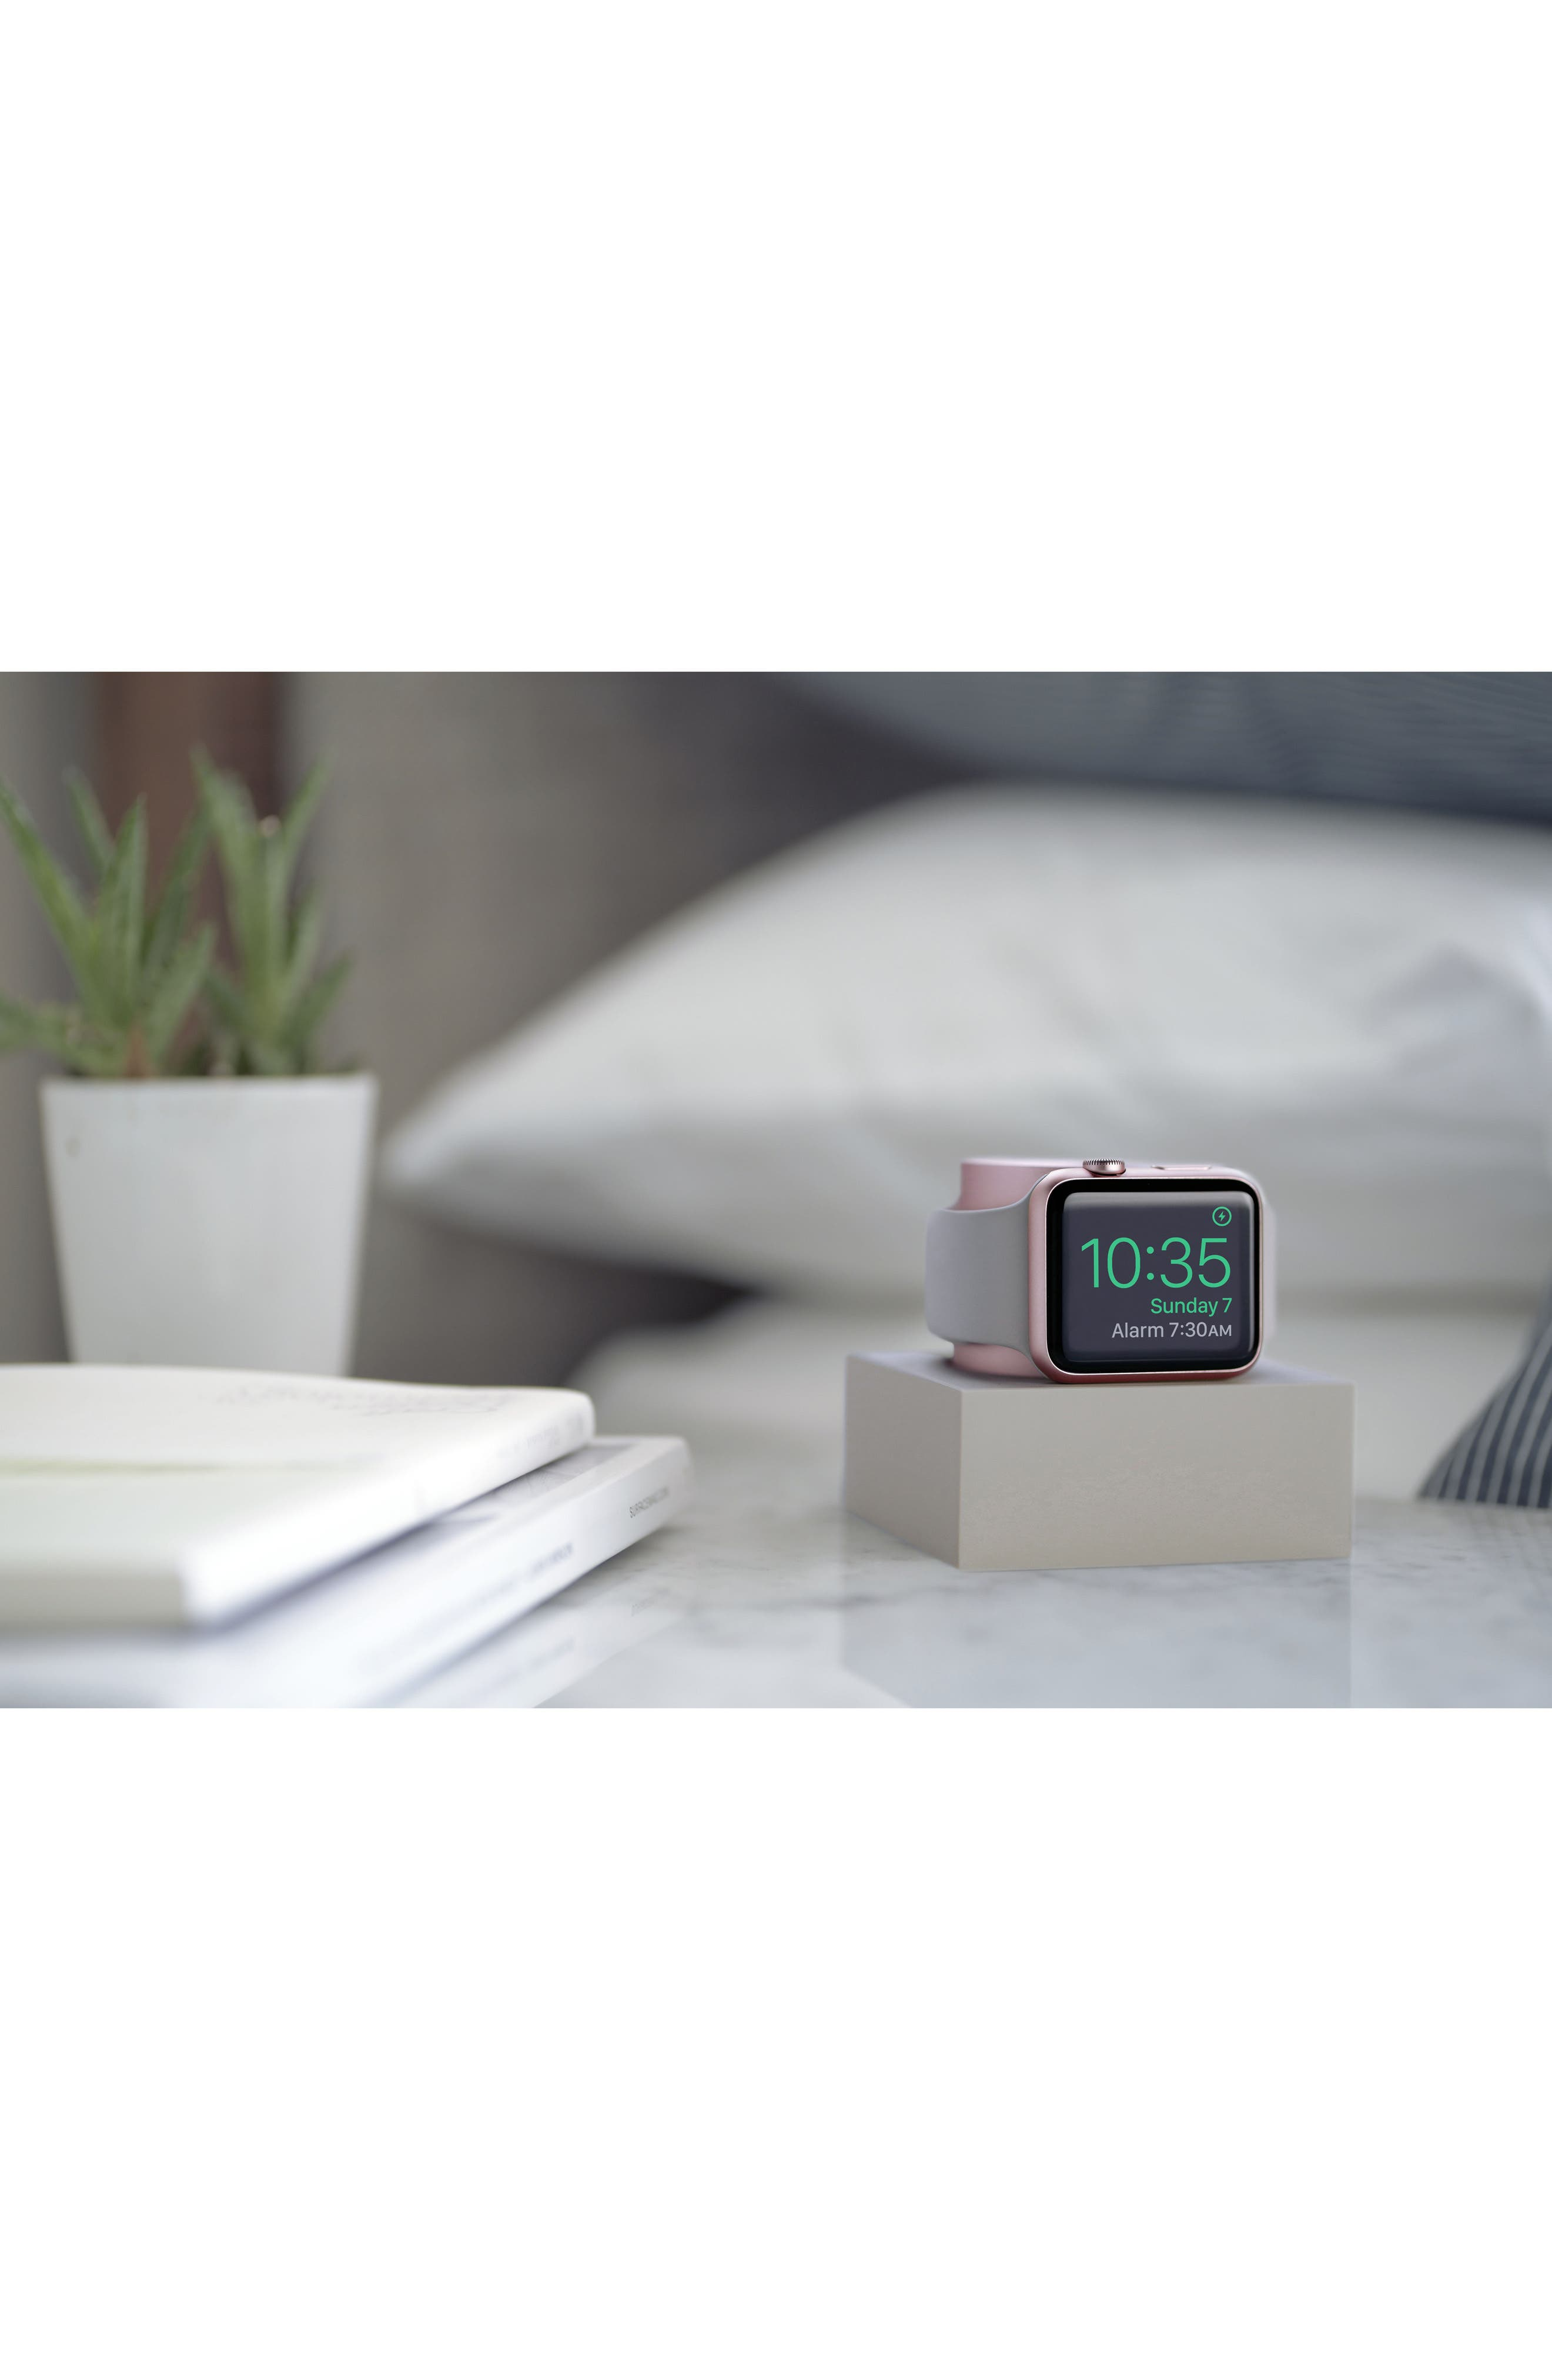 DOCK Apple Watch Dock & Charging Station,                             Alternate thumbnail 3, color,                             900